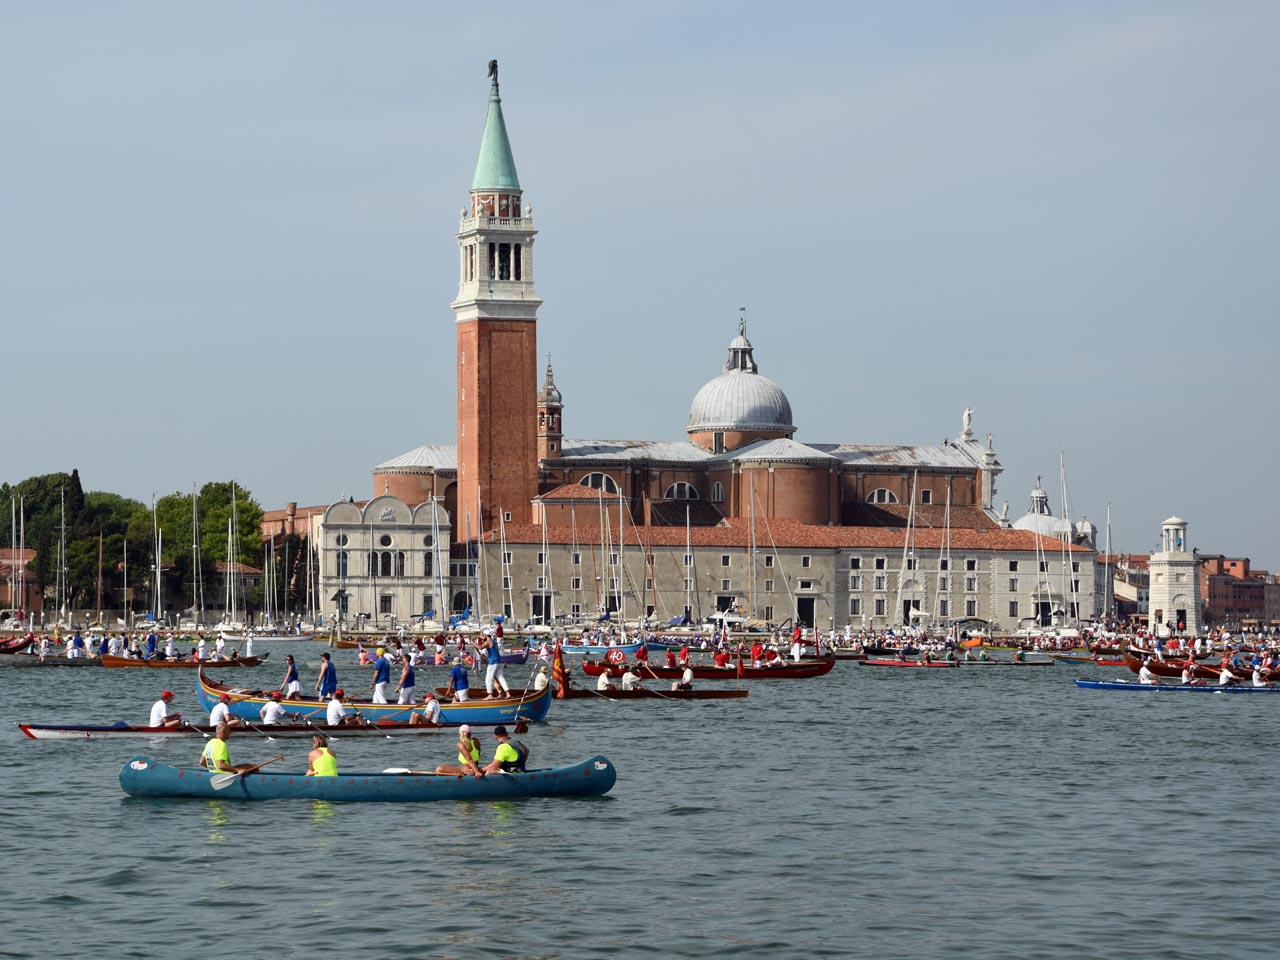 At the start - with San Giorgio Maggiore in background